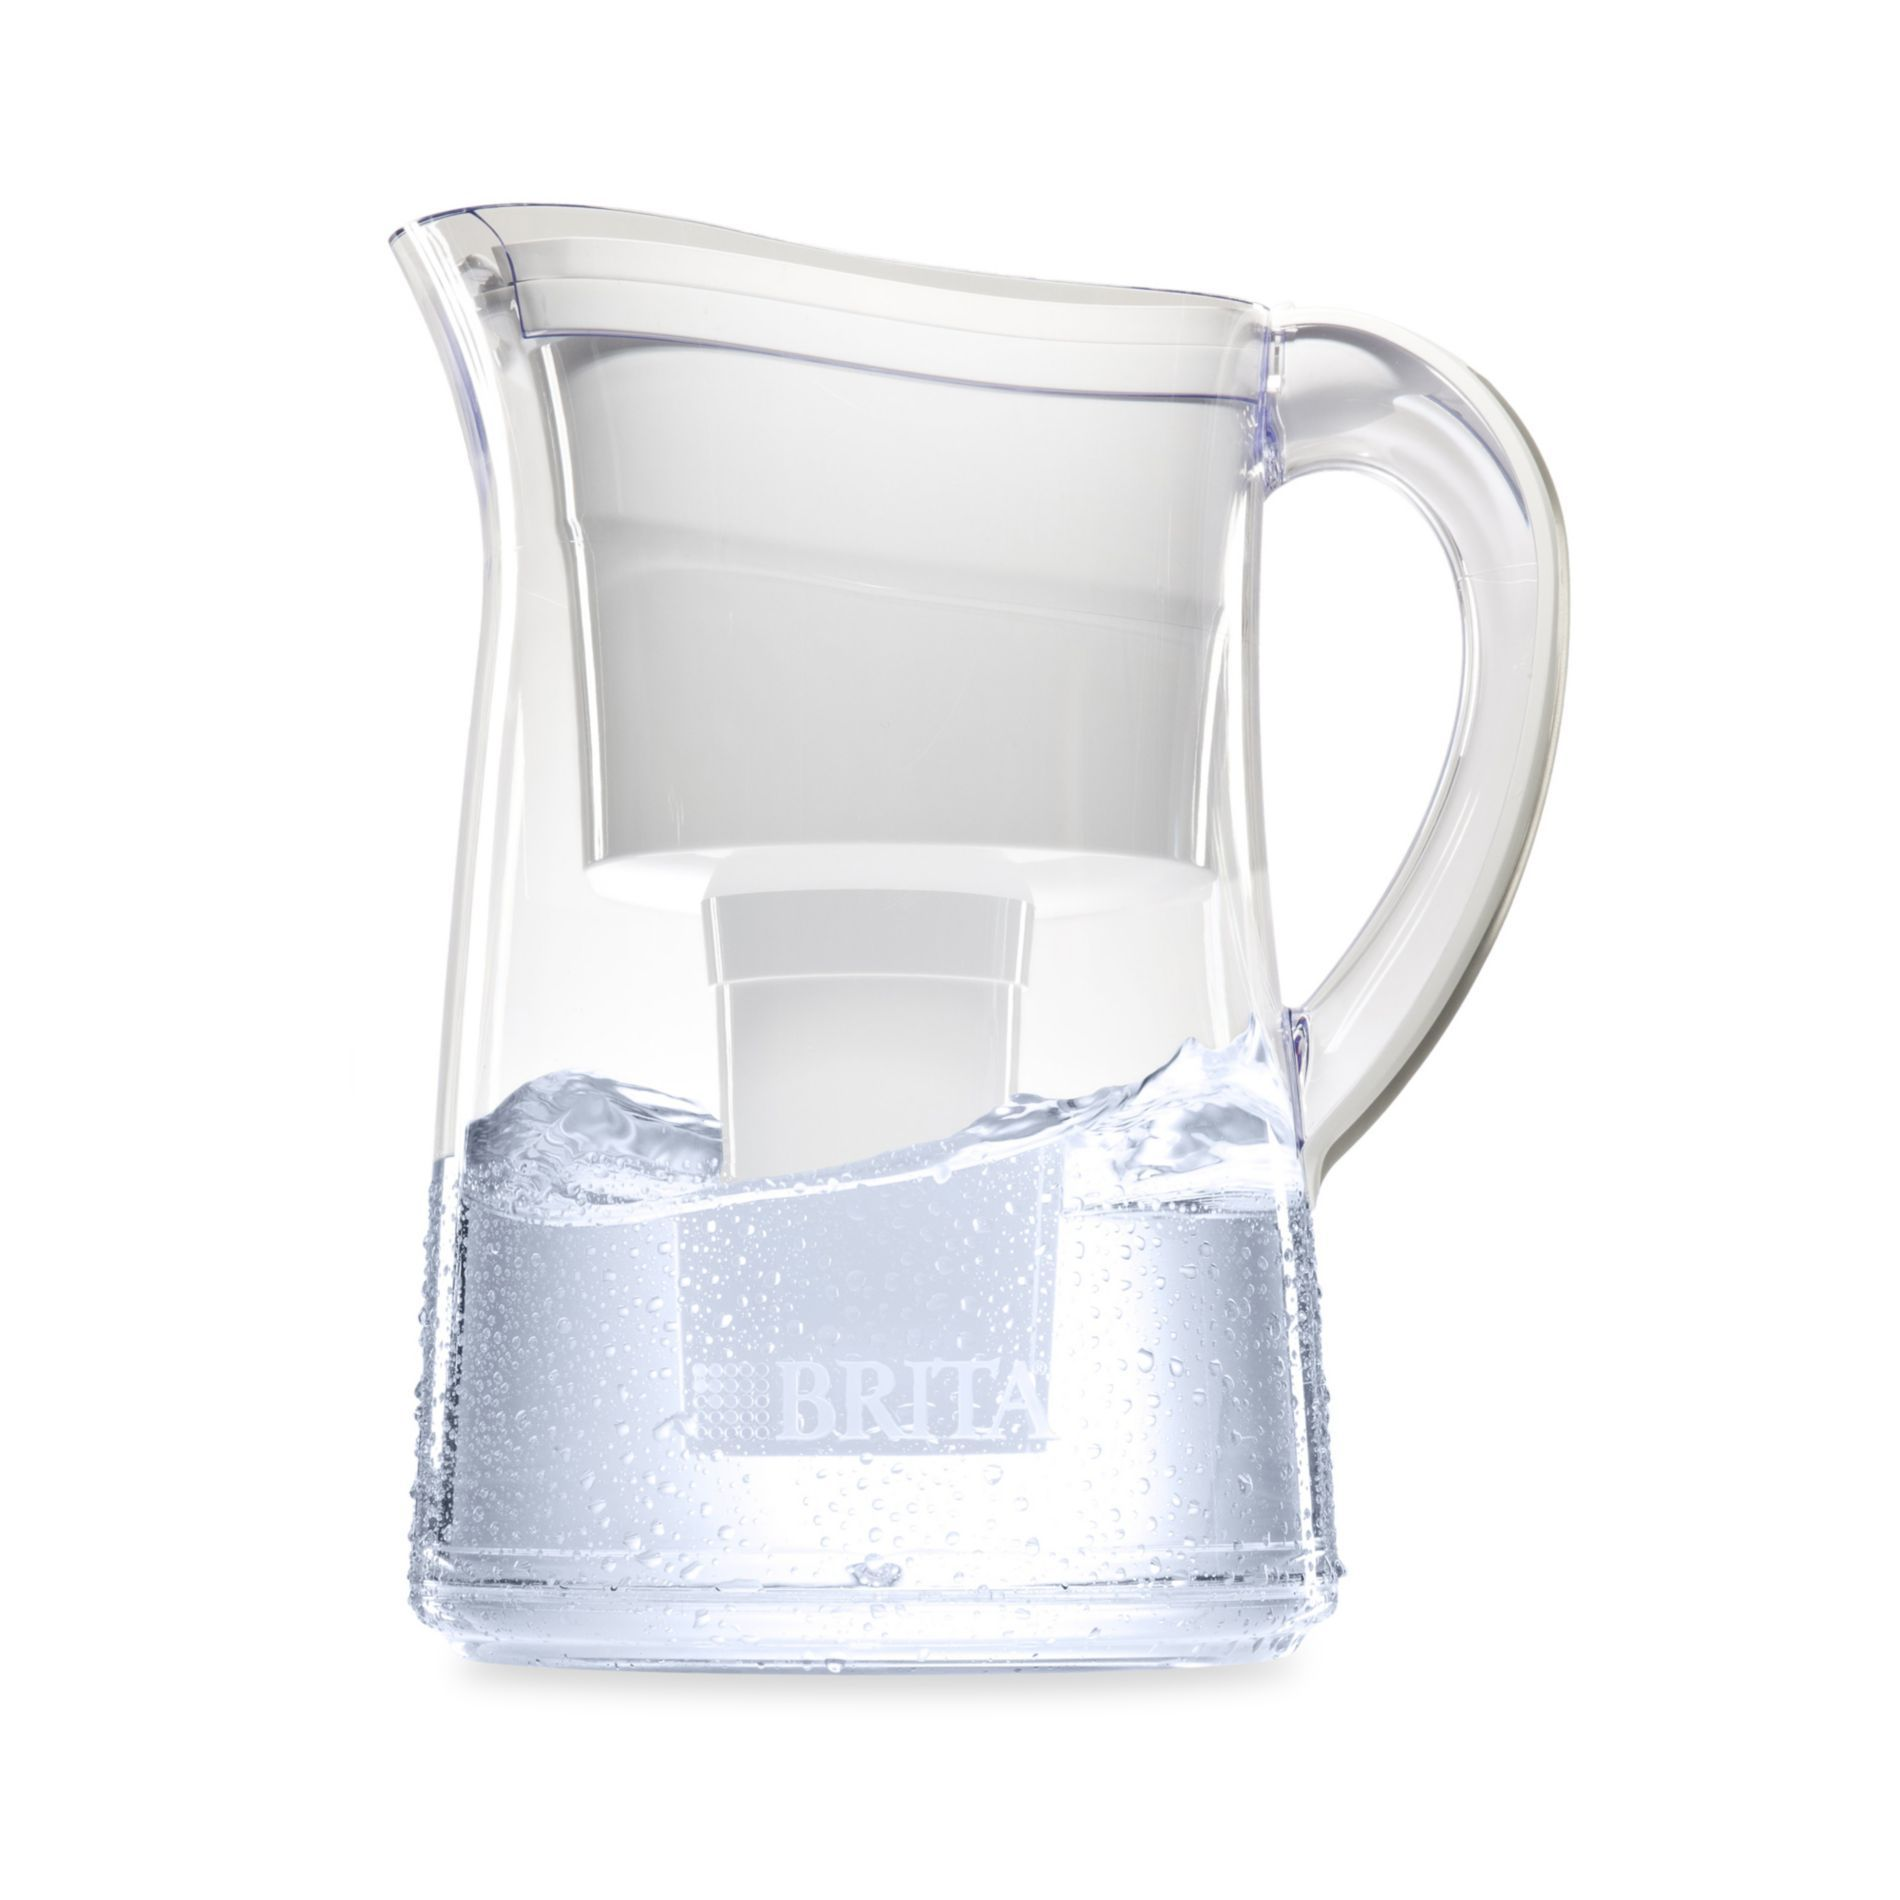 Brita Capri 10 Cup Water Filter Pitcher